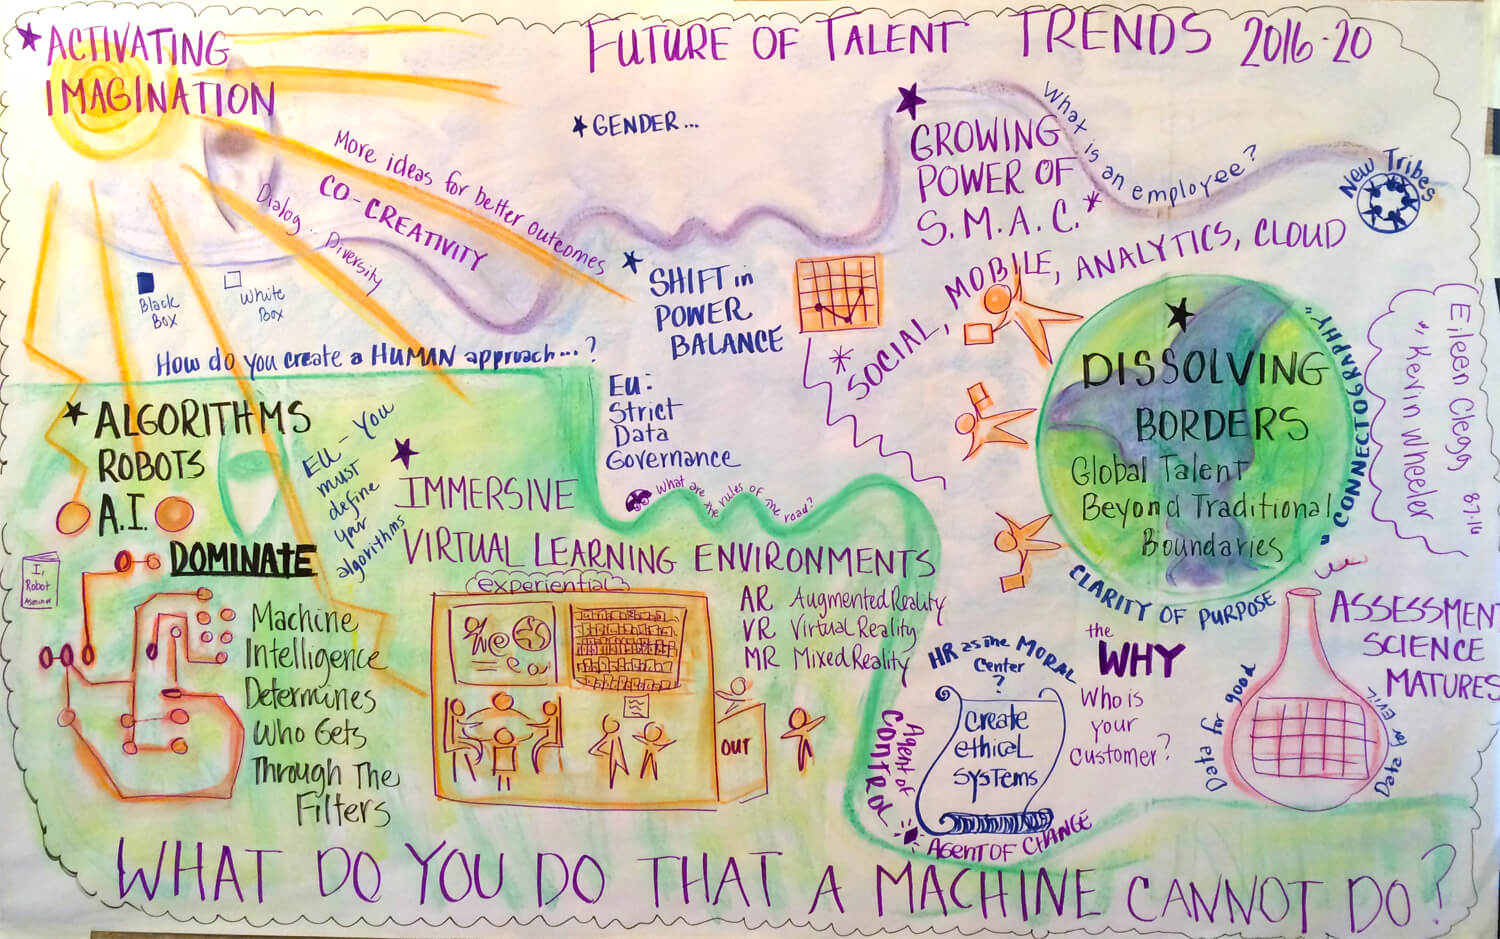 Future of Talent Retreat 2016 - Trends 2016-2020